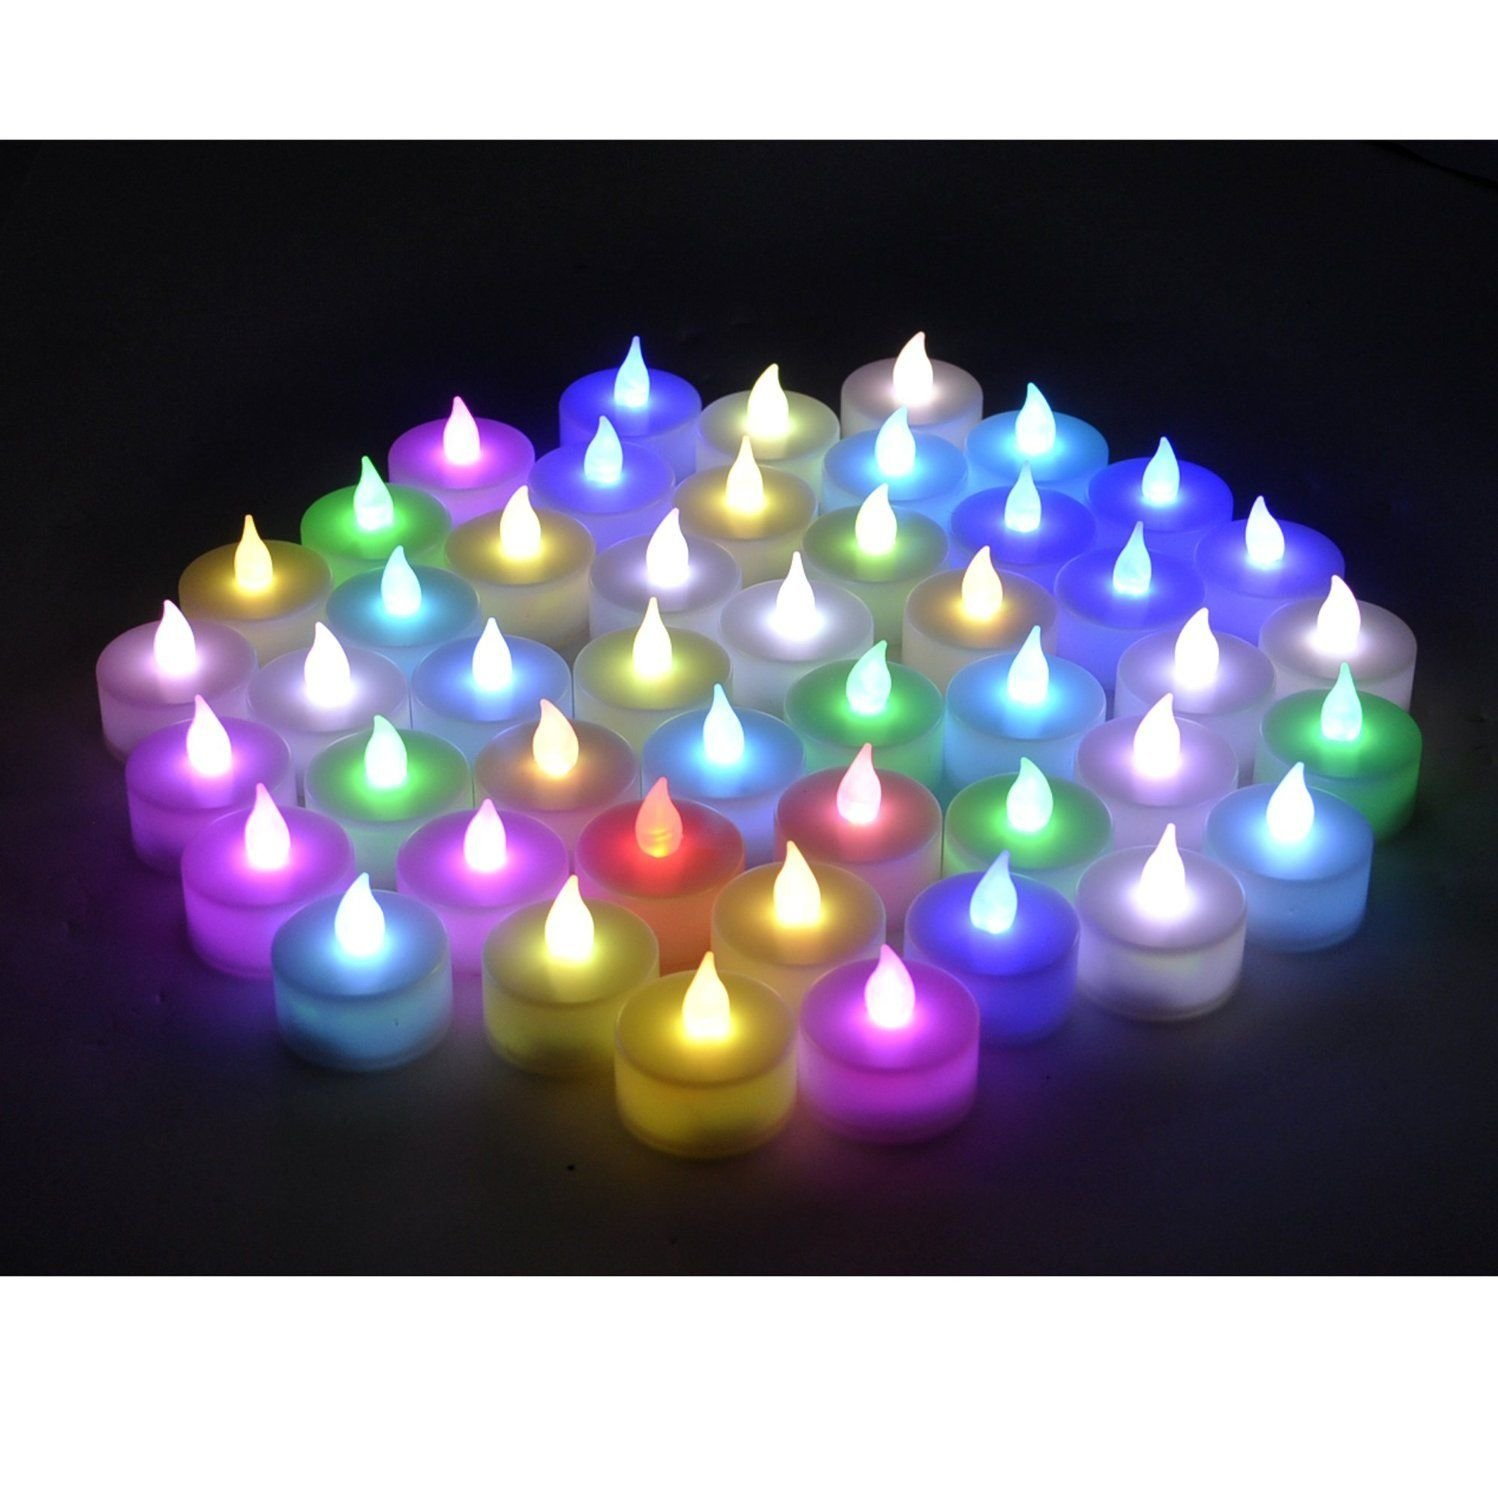 Instapark LCL-C48 Battery-powered Flameless Color-changing LED Tealight Candles, Four Dozen Pack by Instapark